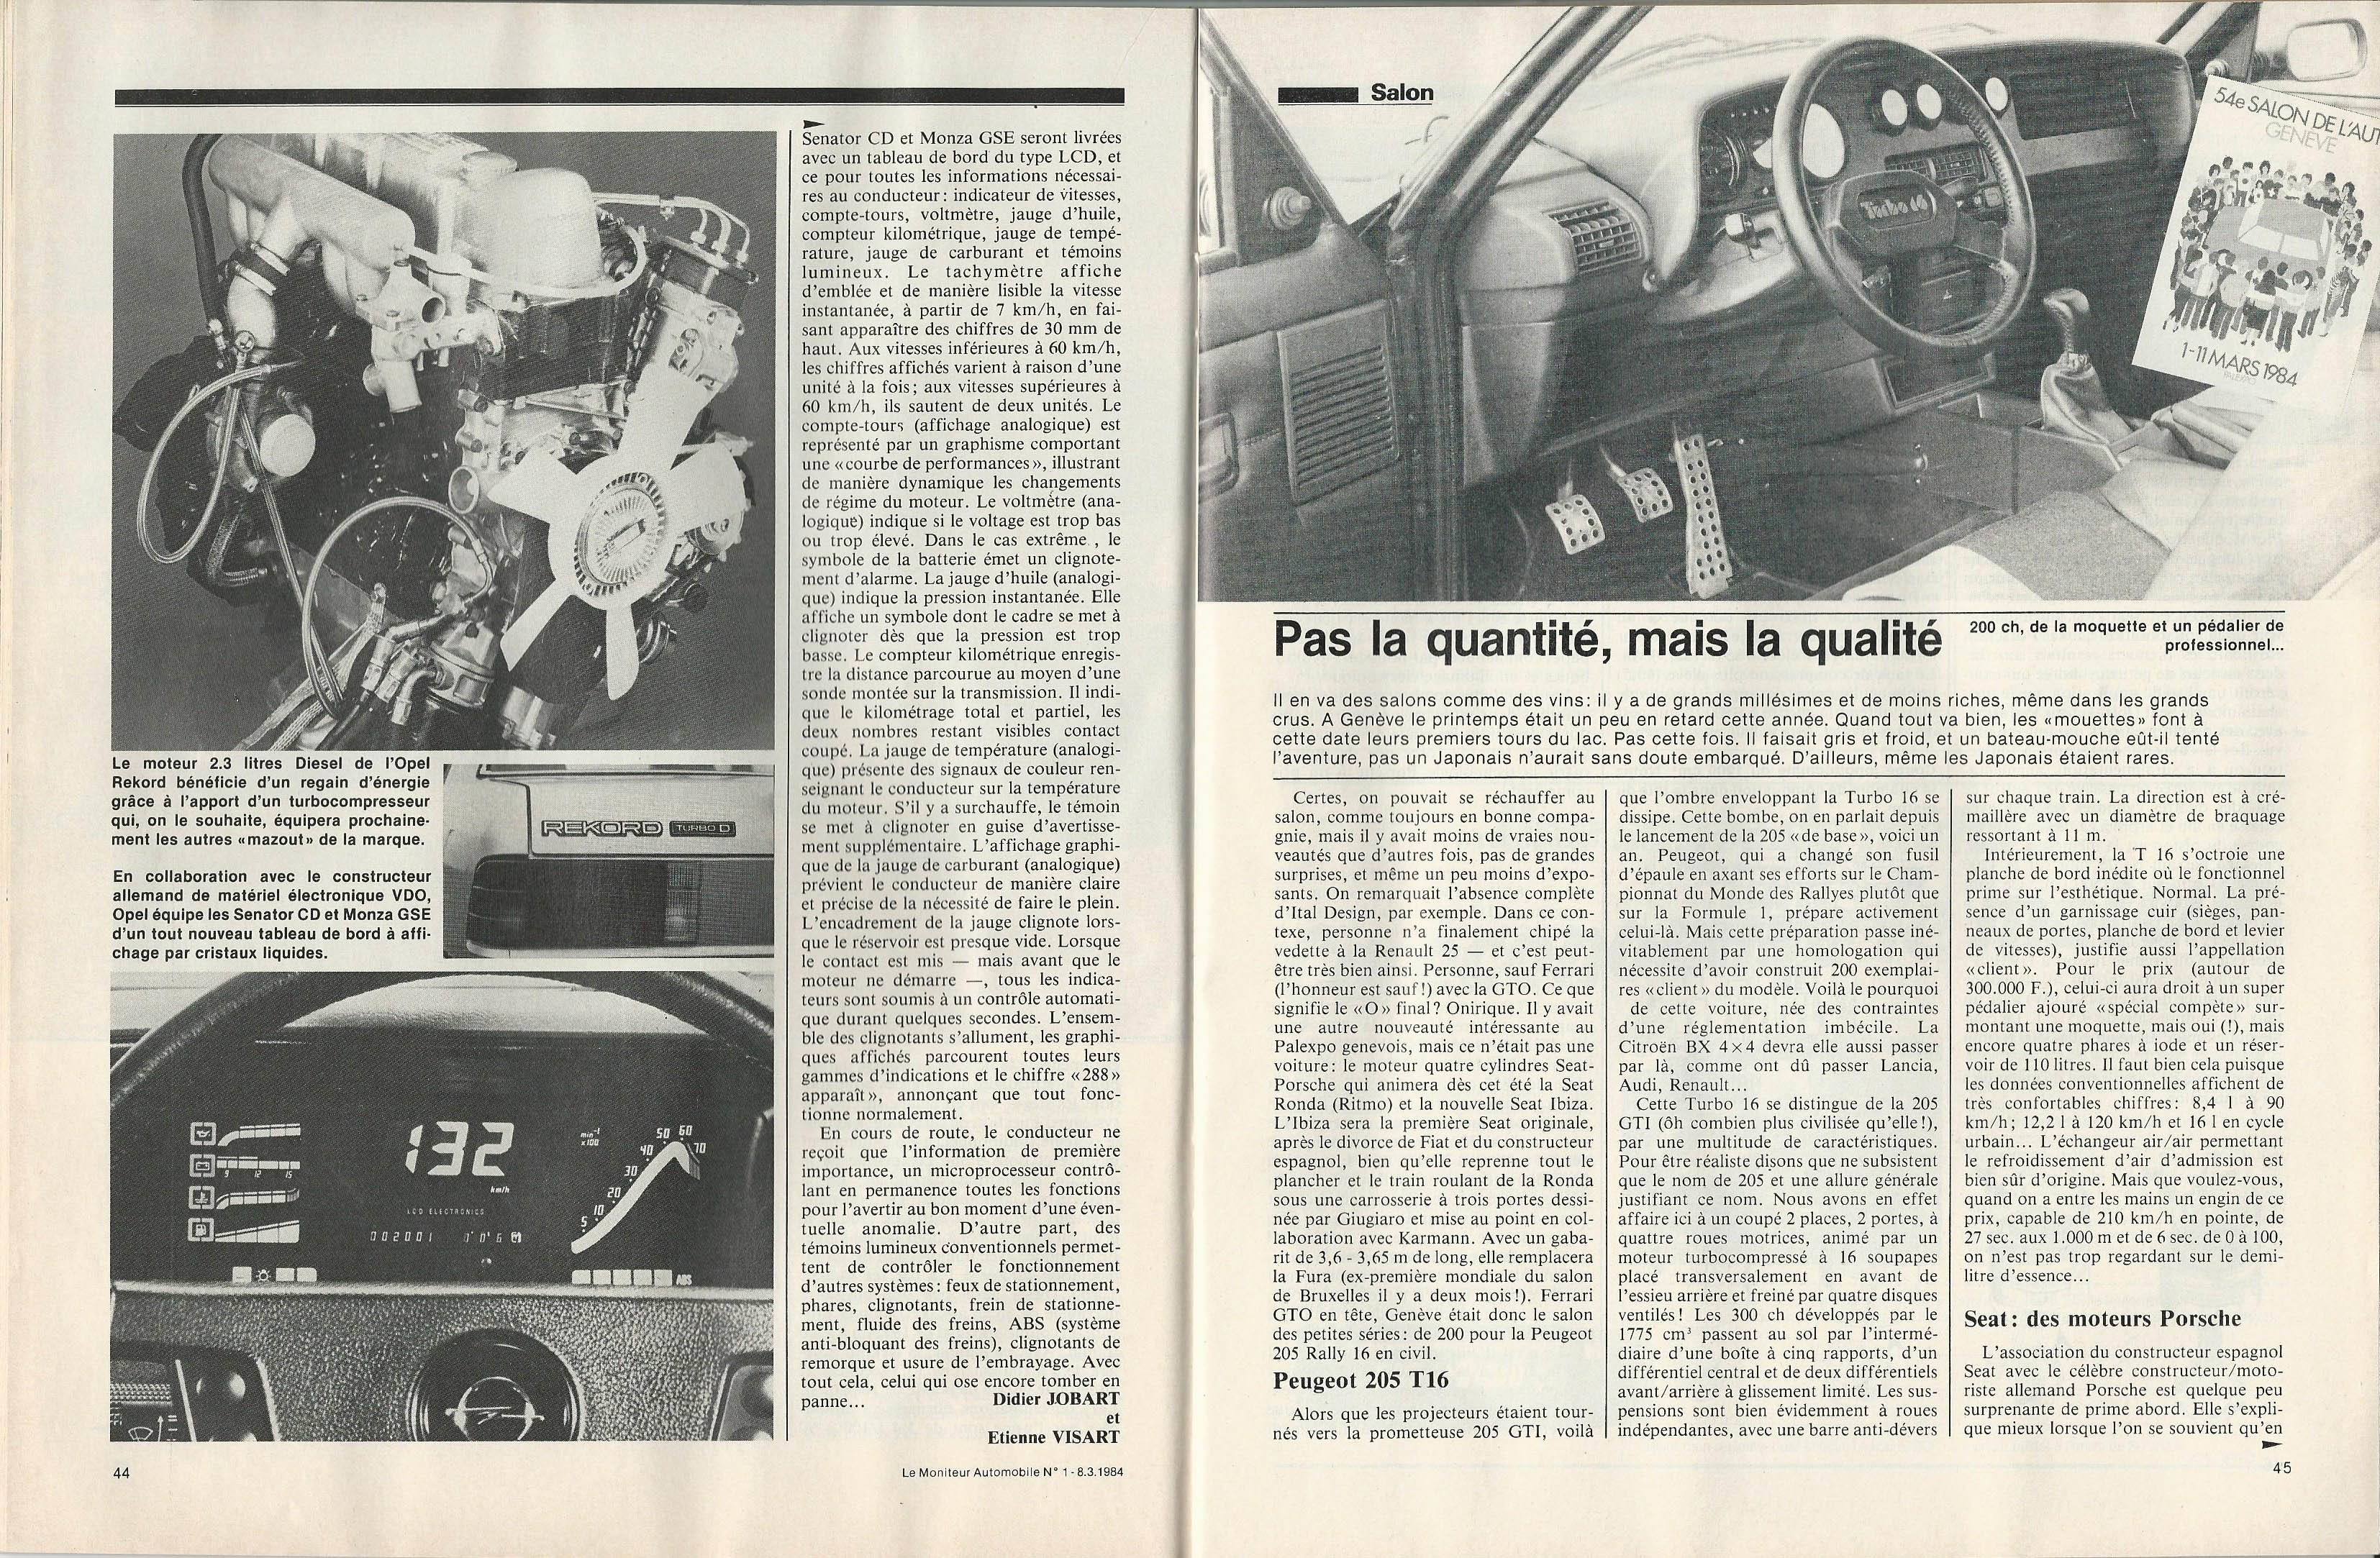 Moniteur Automobile 01 - 08 Mars 1984 (23)